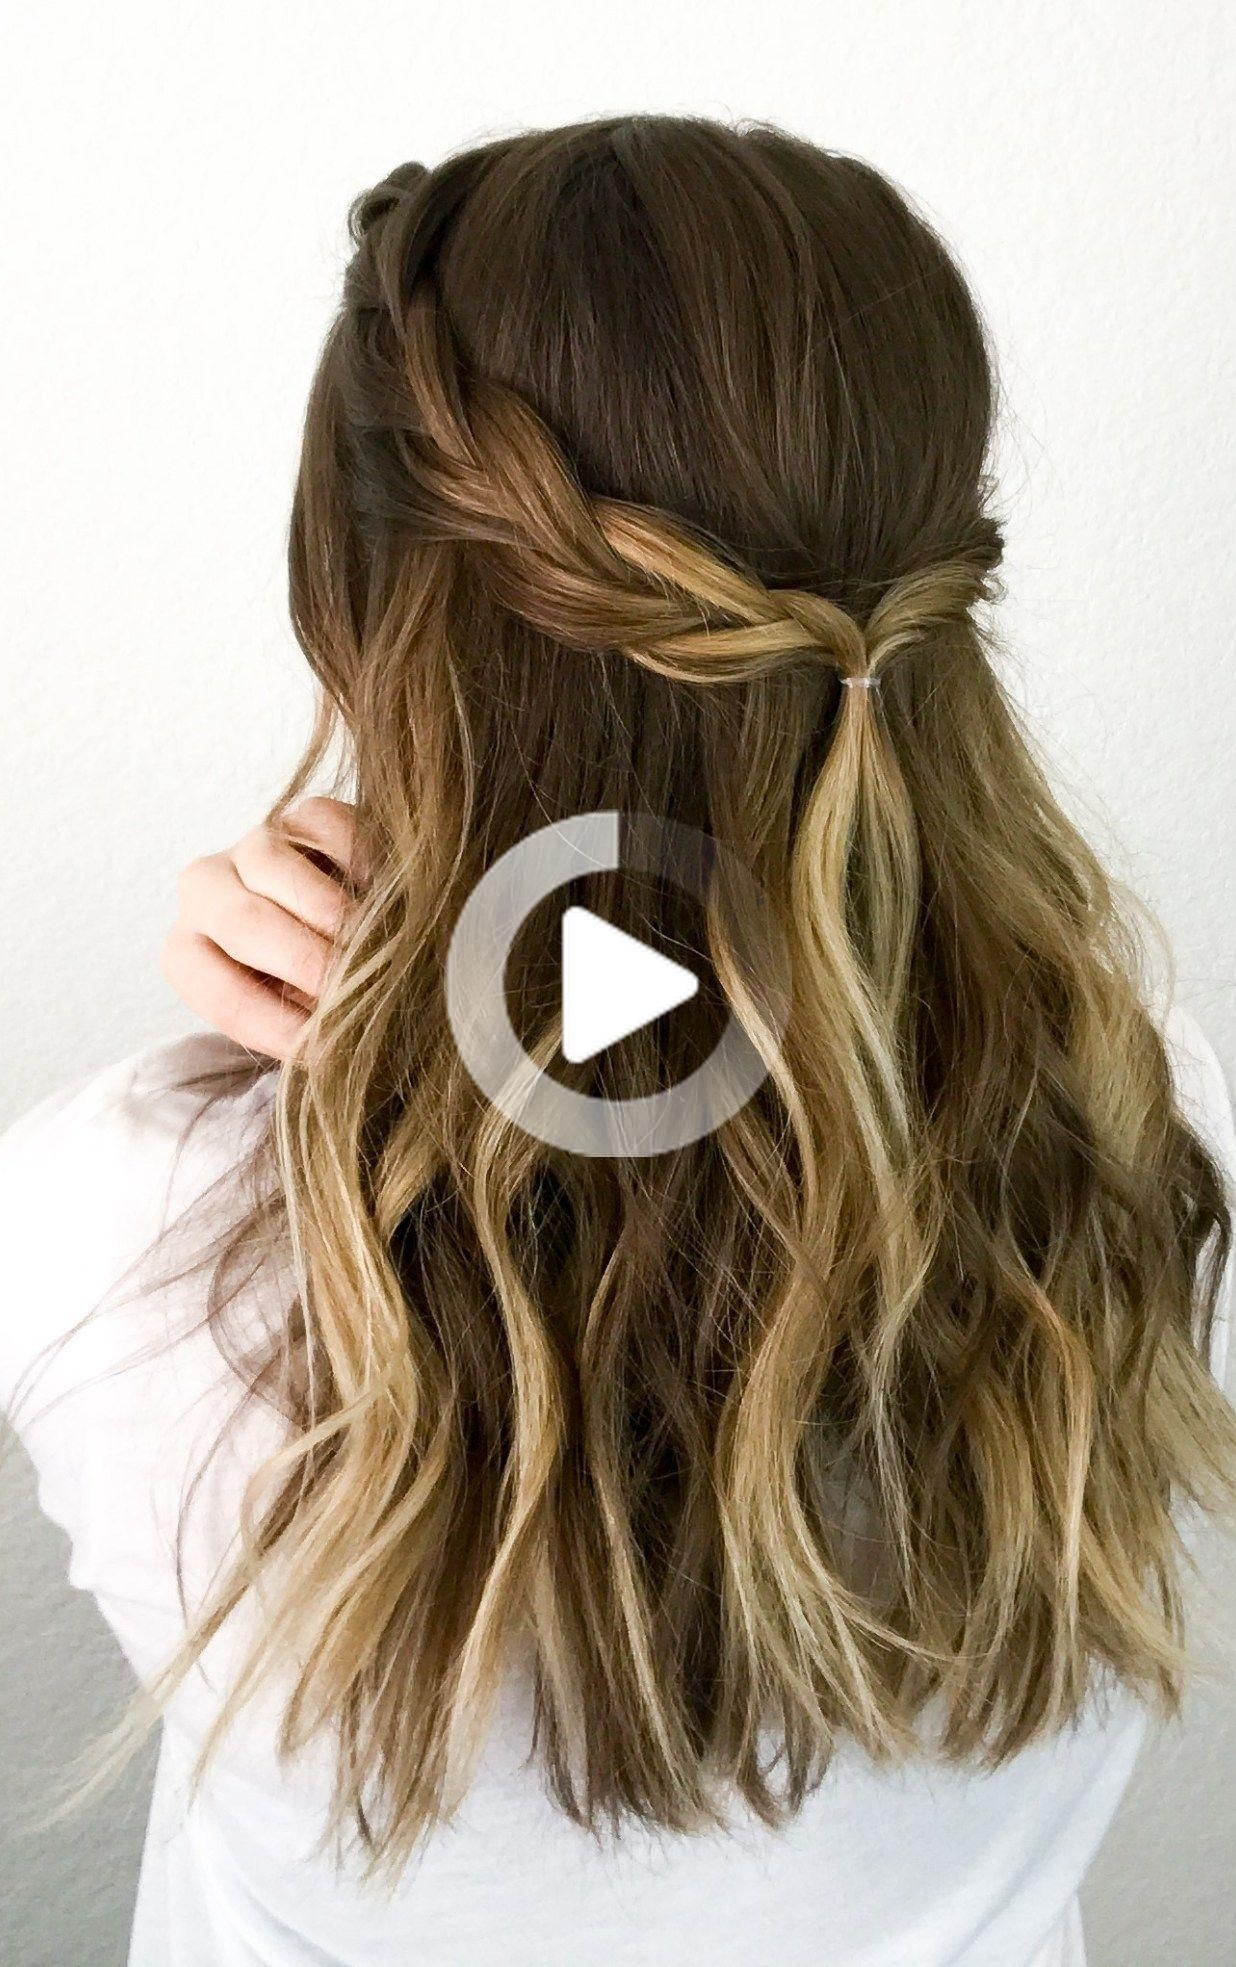 Easy Half-up Braid &